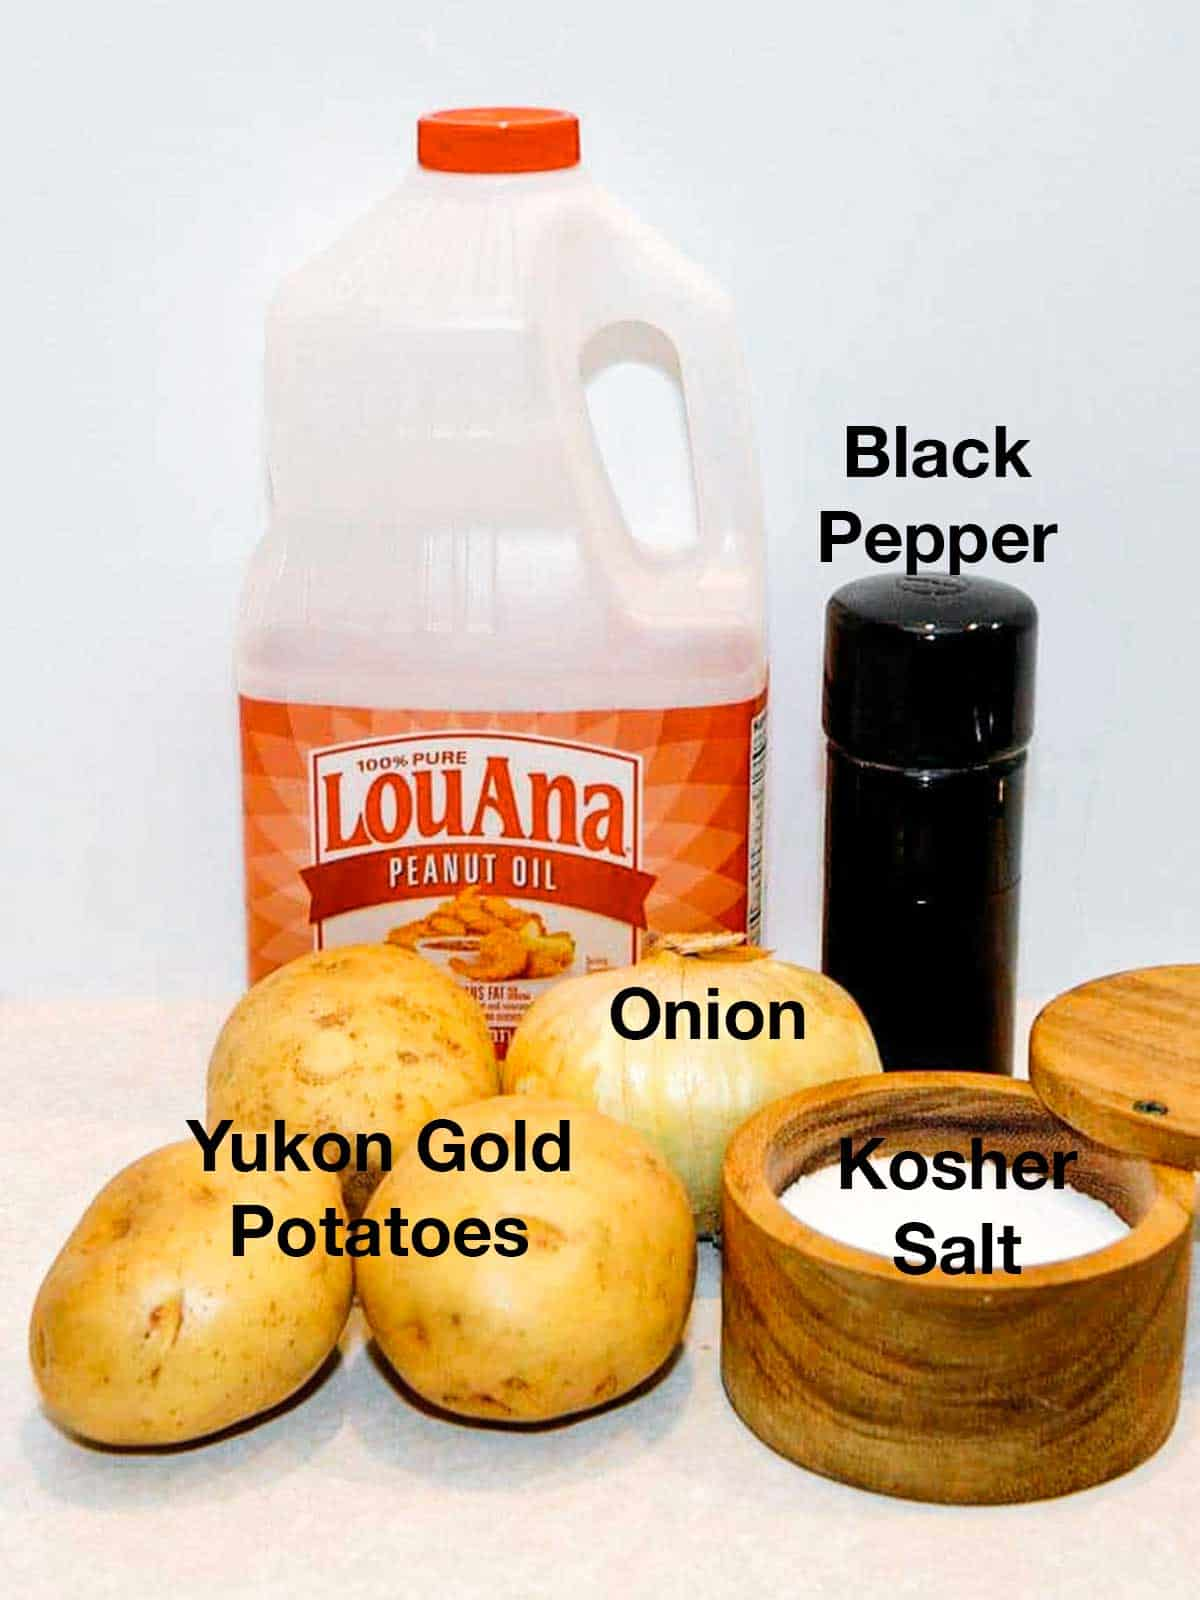 Ingredients used for potatoes and onions